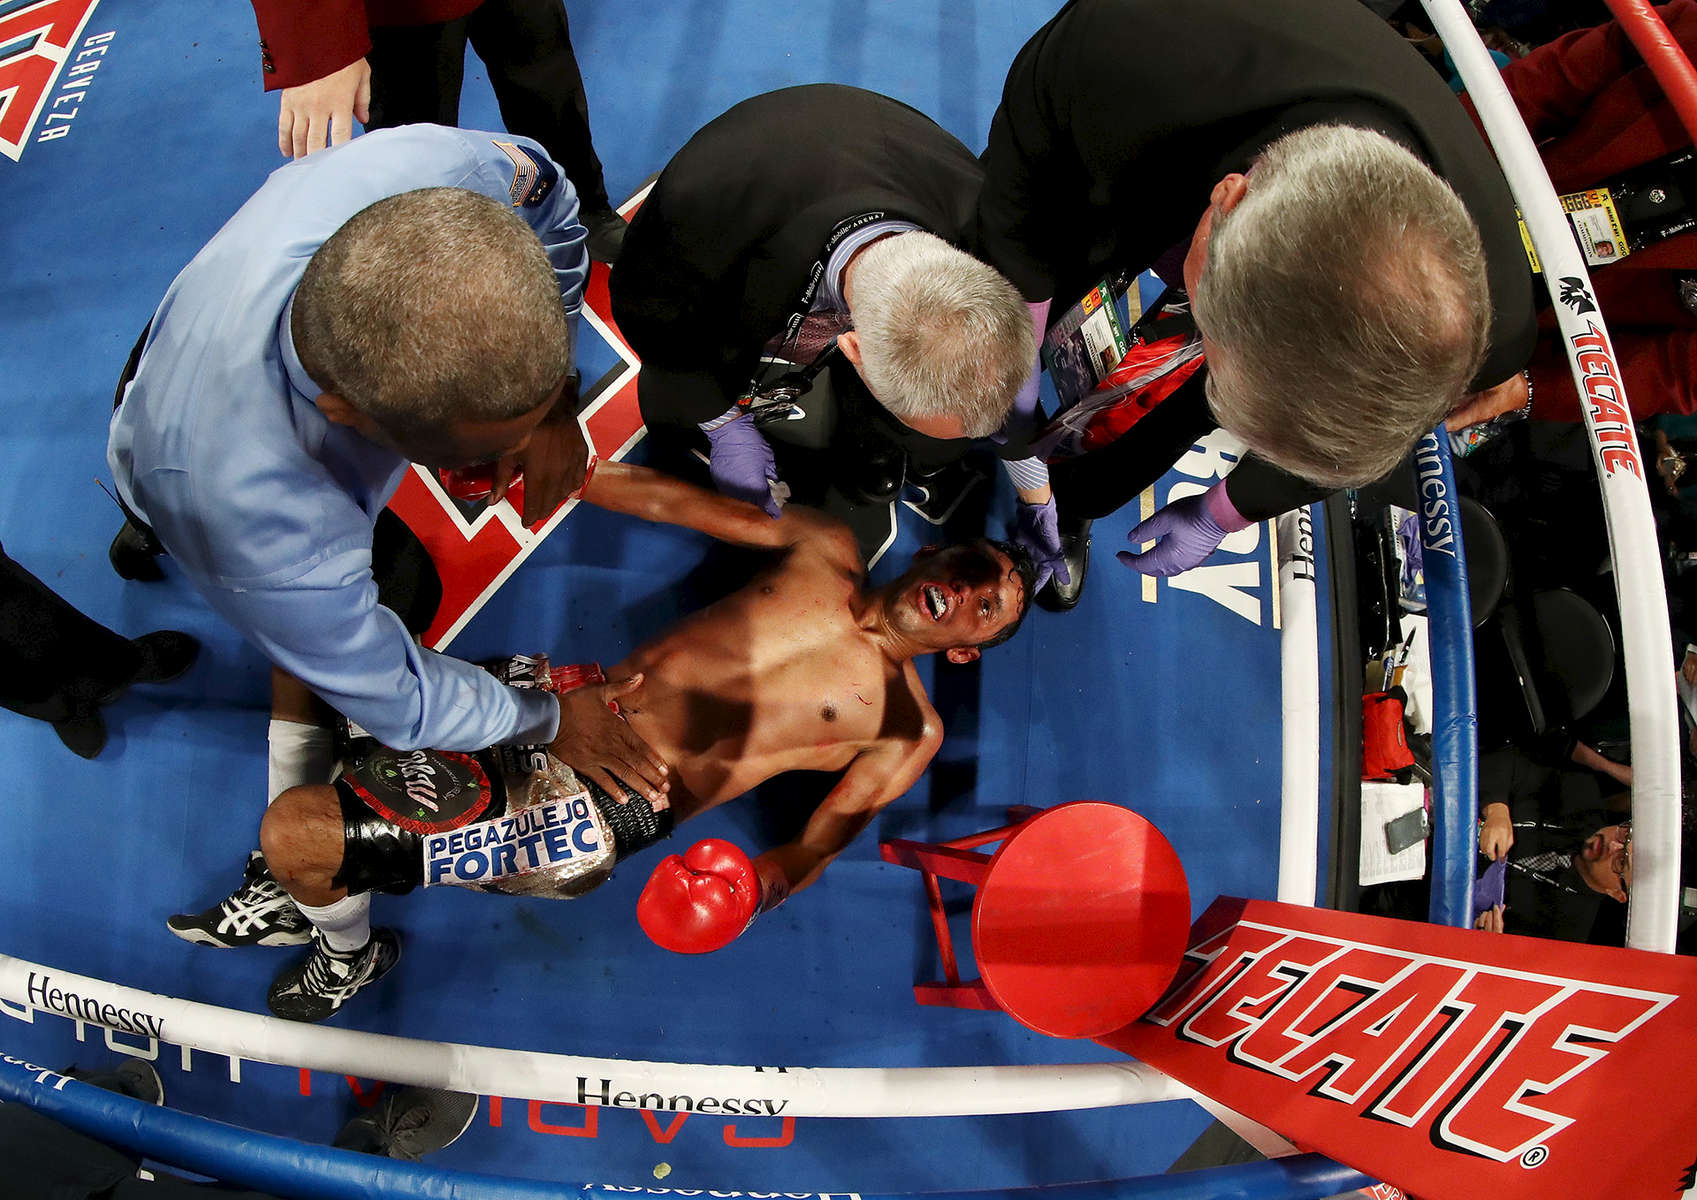 Moises Fuentes is attended to after being knocked out in the fifth round by Roman Gonzalez during their super flyweight bout at T-Mobile Arena on September 15, 2018 in Las Vegas, Nevada.